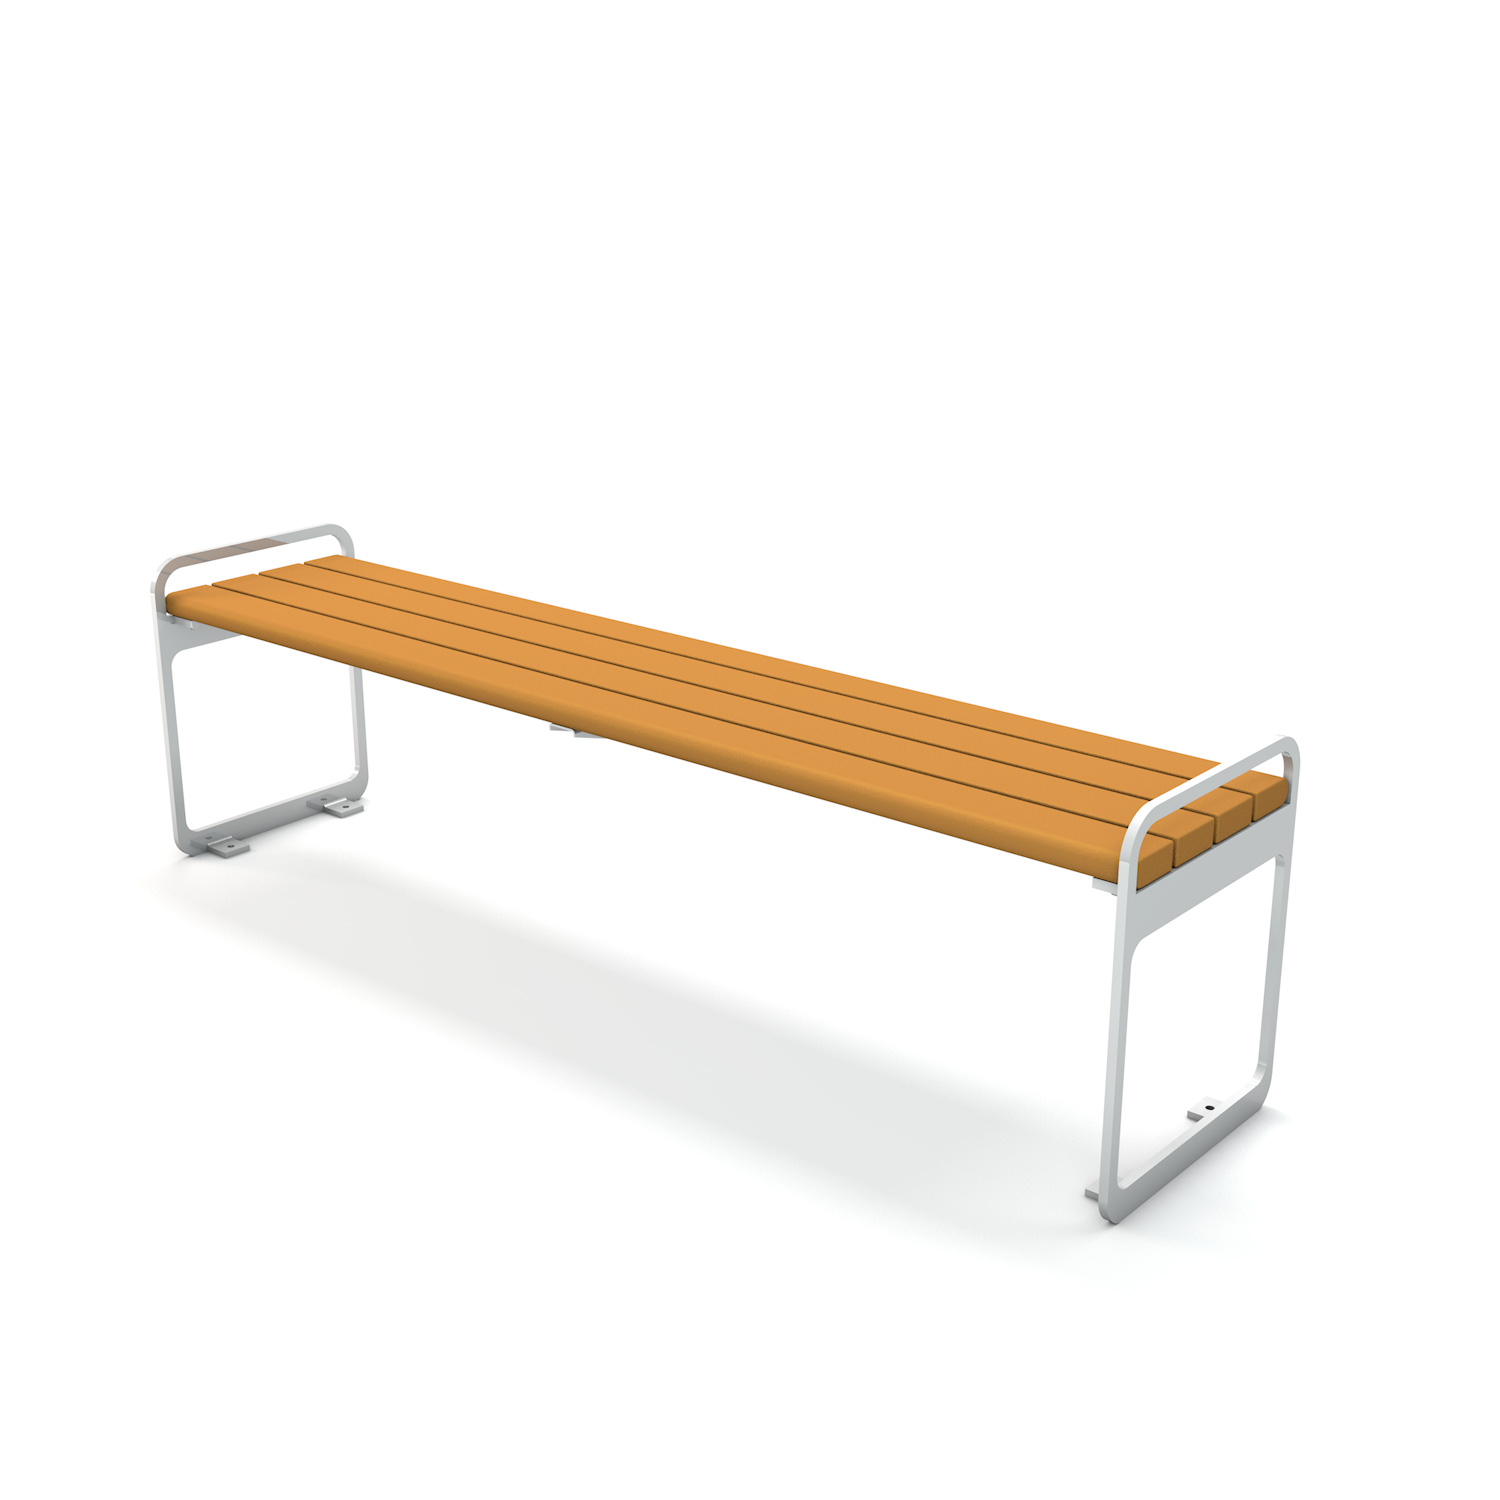 Plaza Backless Bench